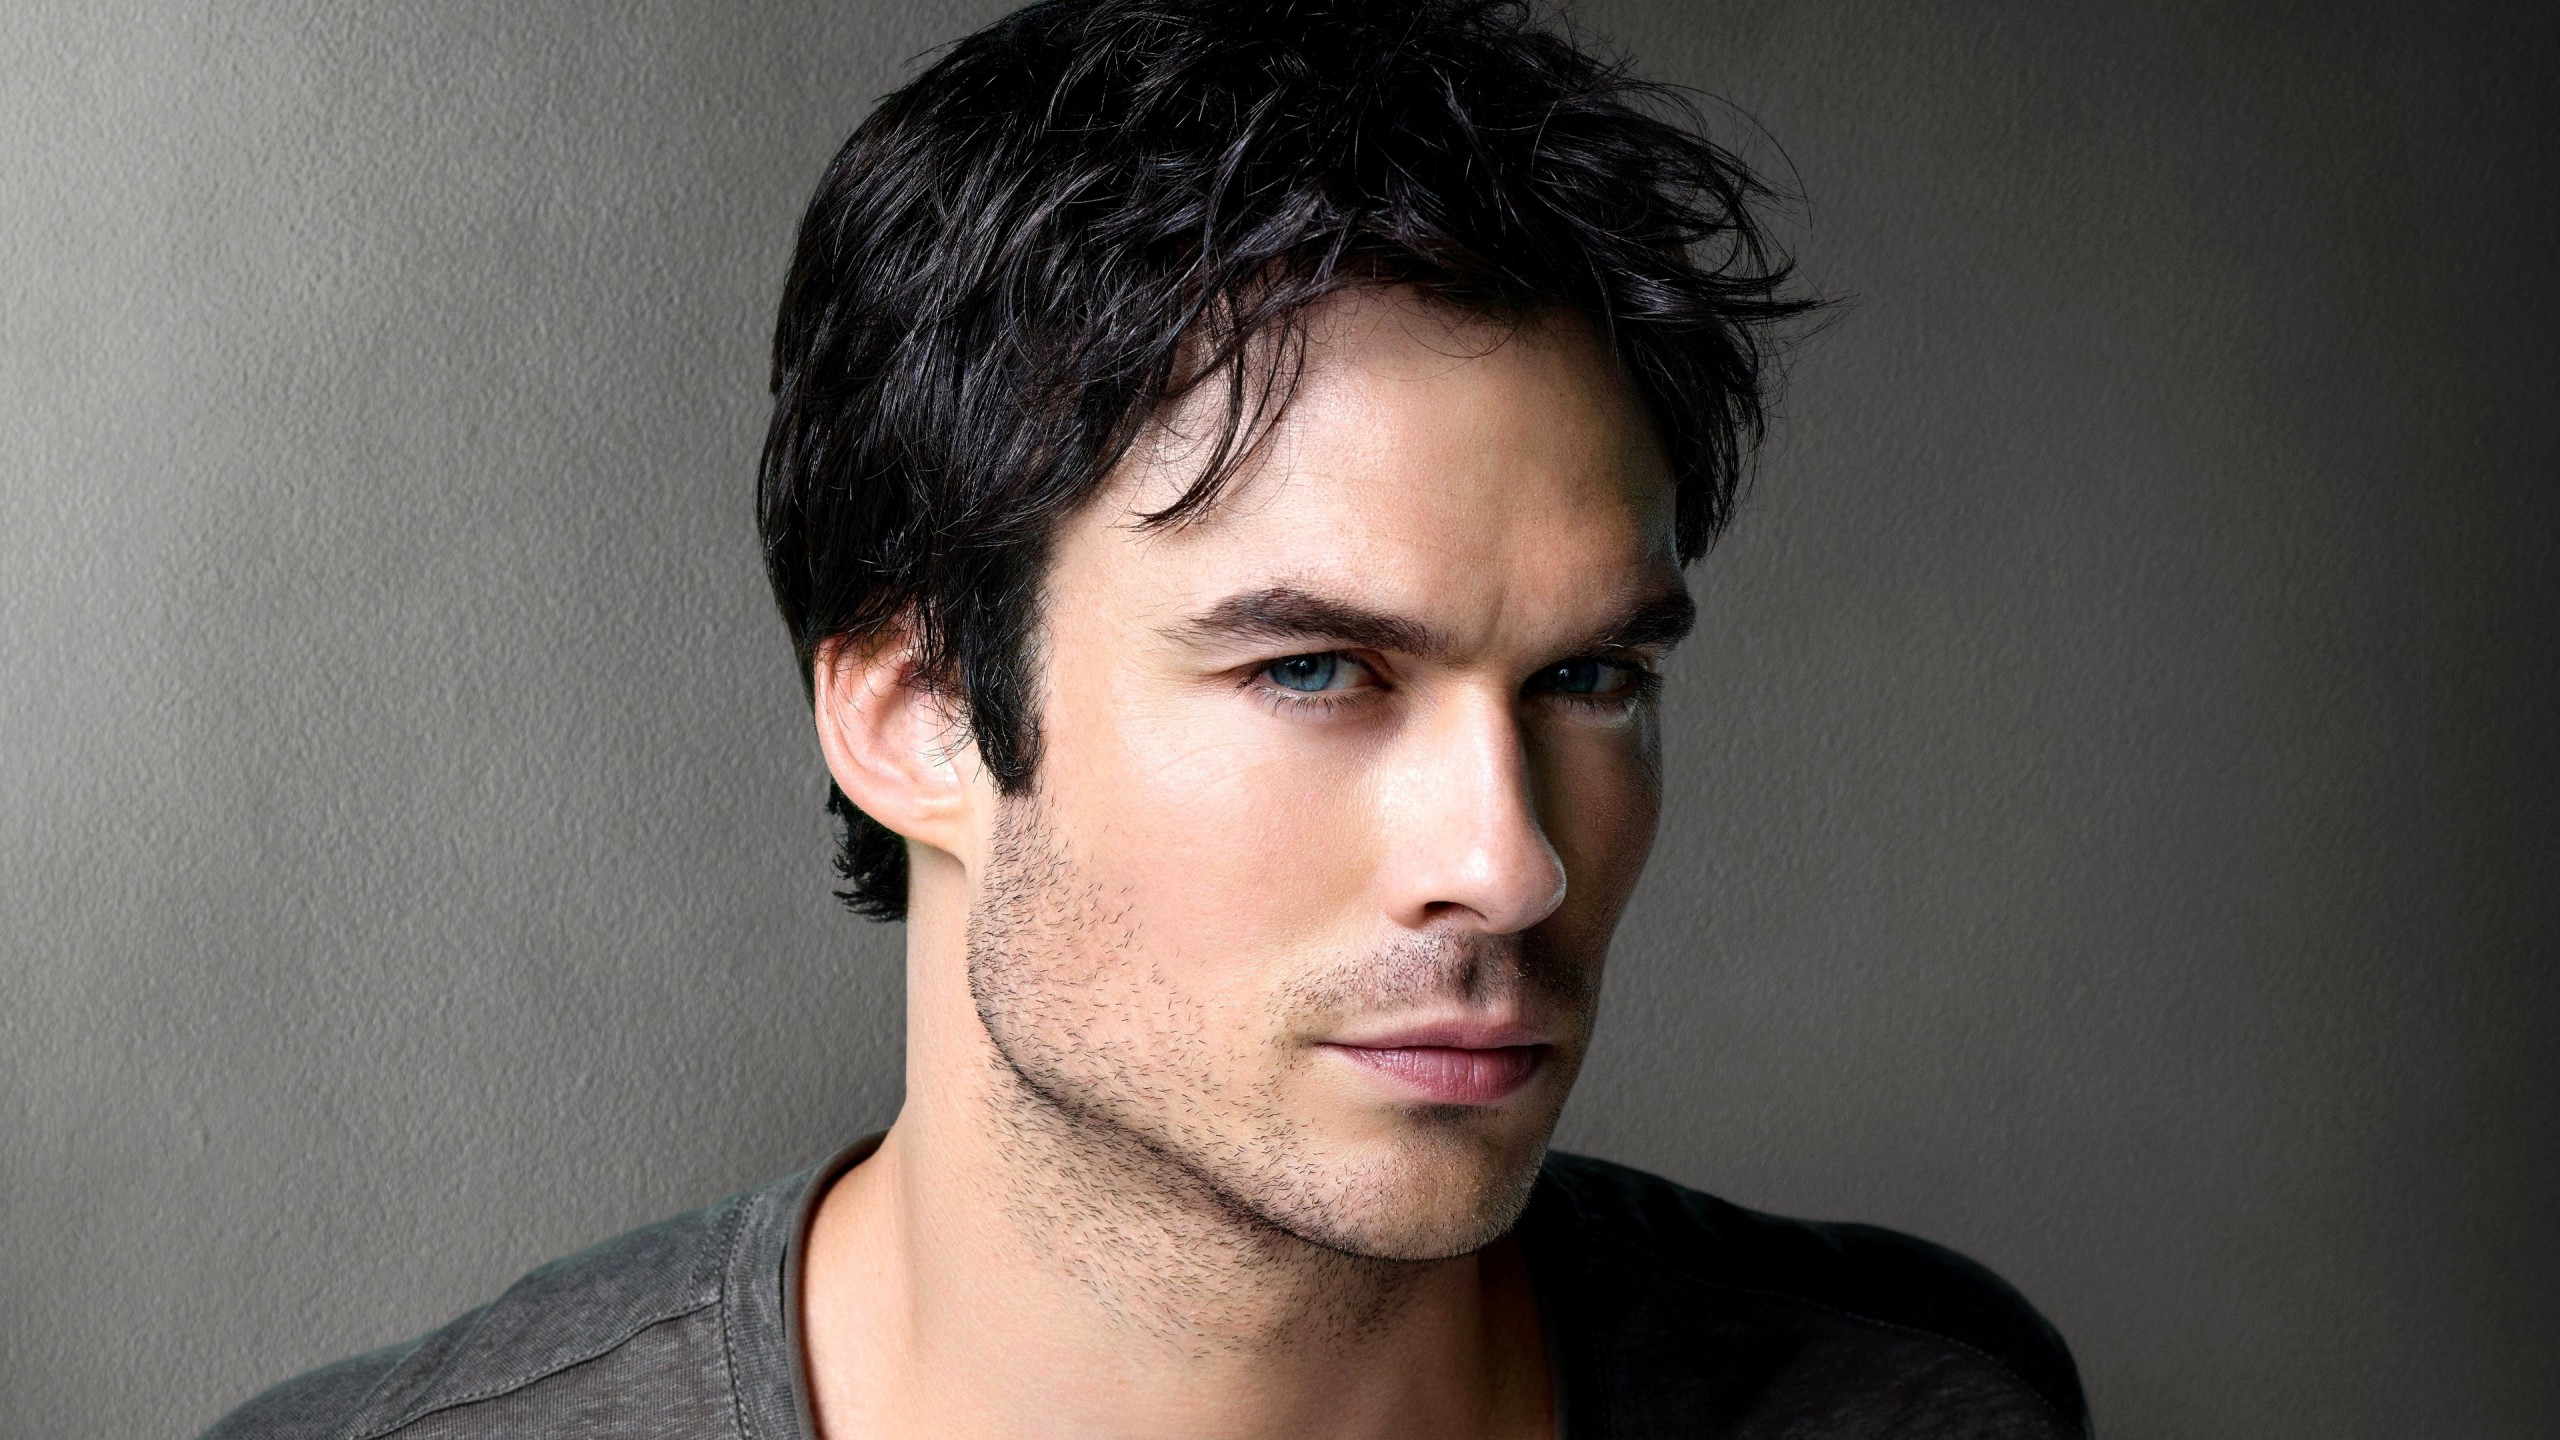 Ian Somerhalder Wallpaper for Social Media YouTube Channel Art